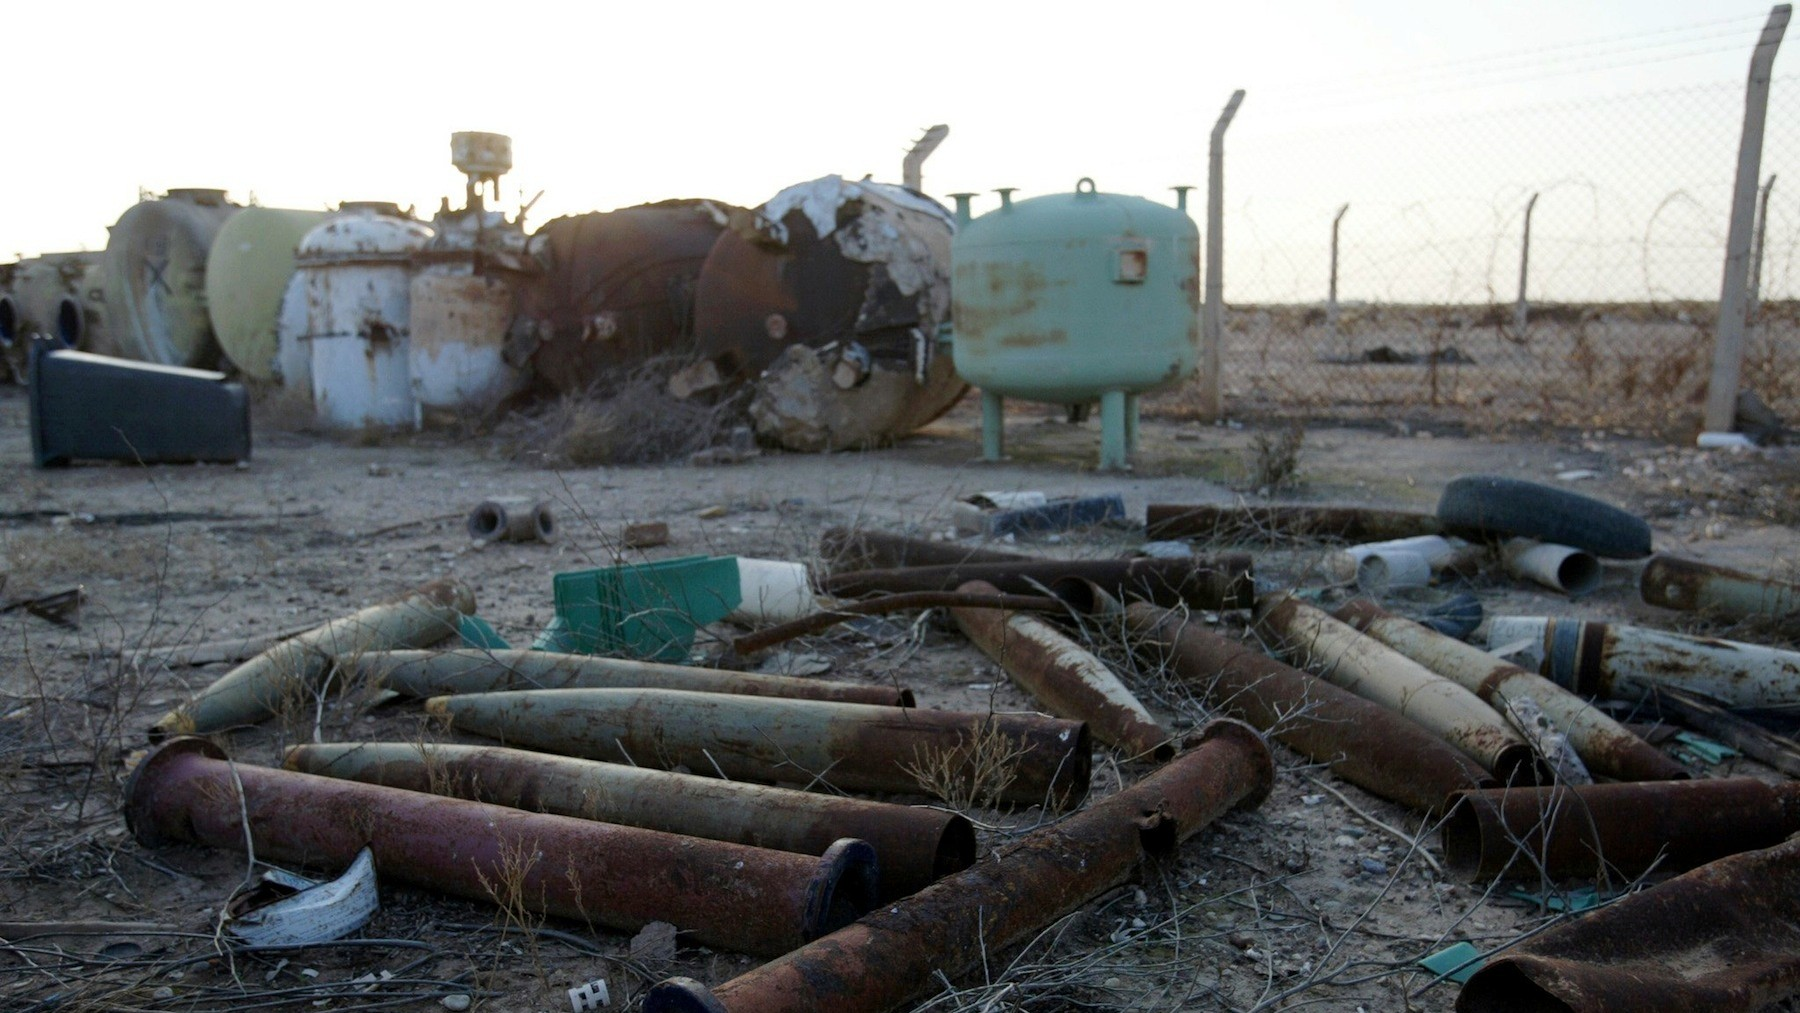 The Islamic State May Be Using Saddam's Chemical Weapons Against the Kurds